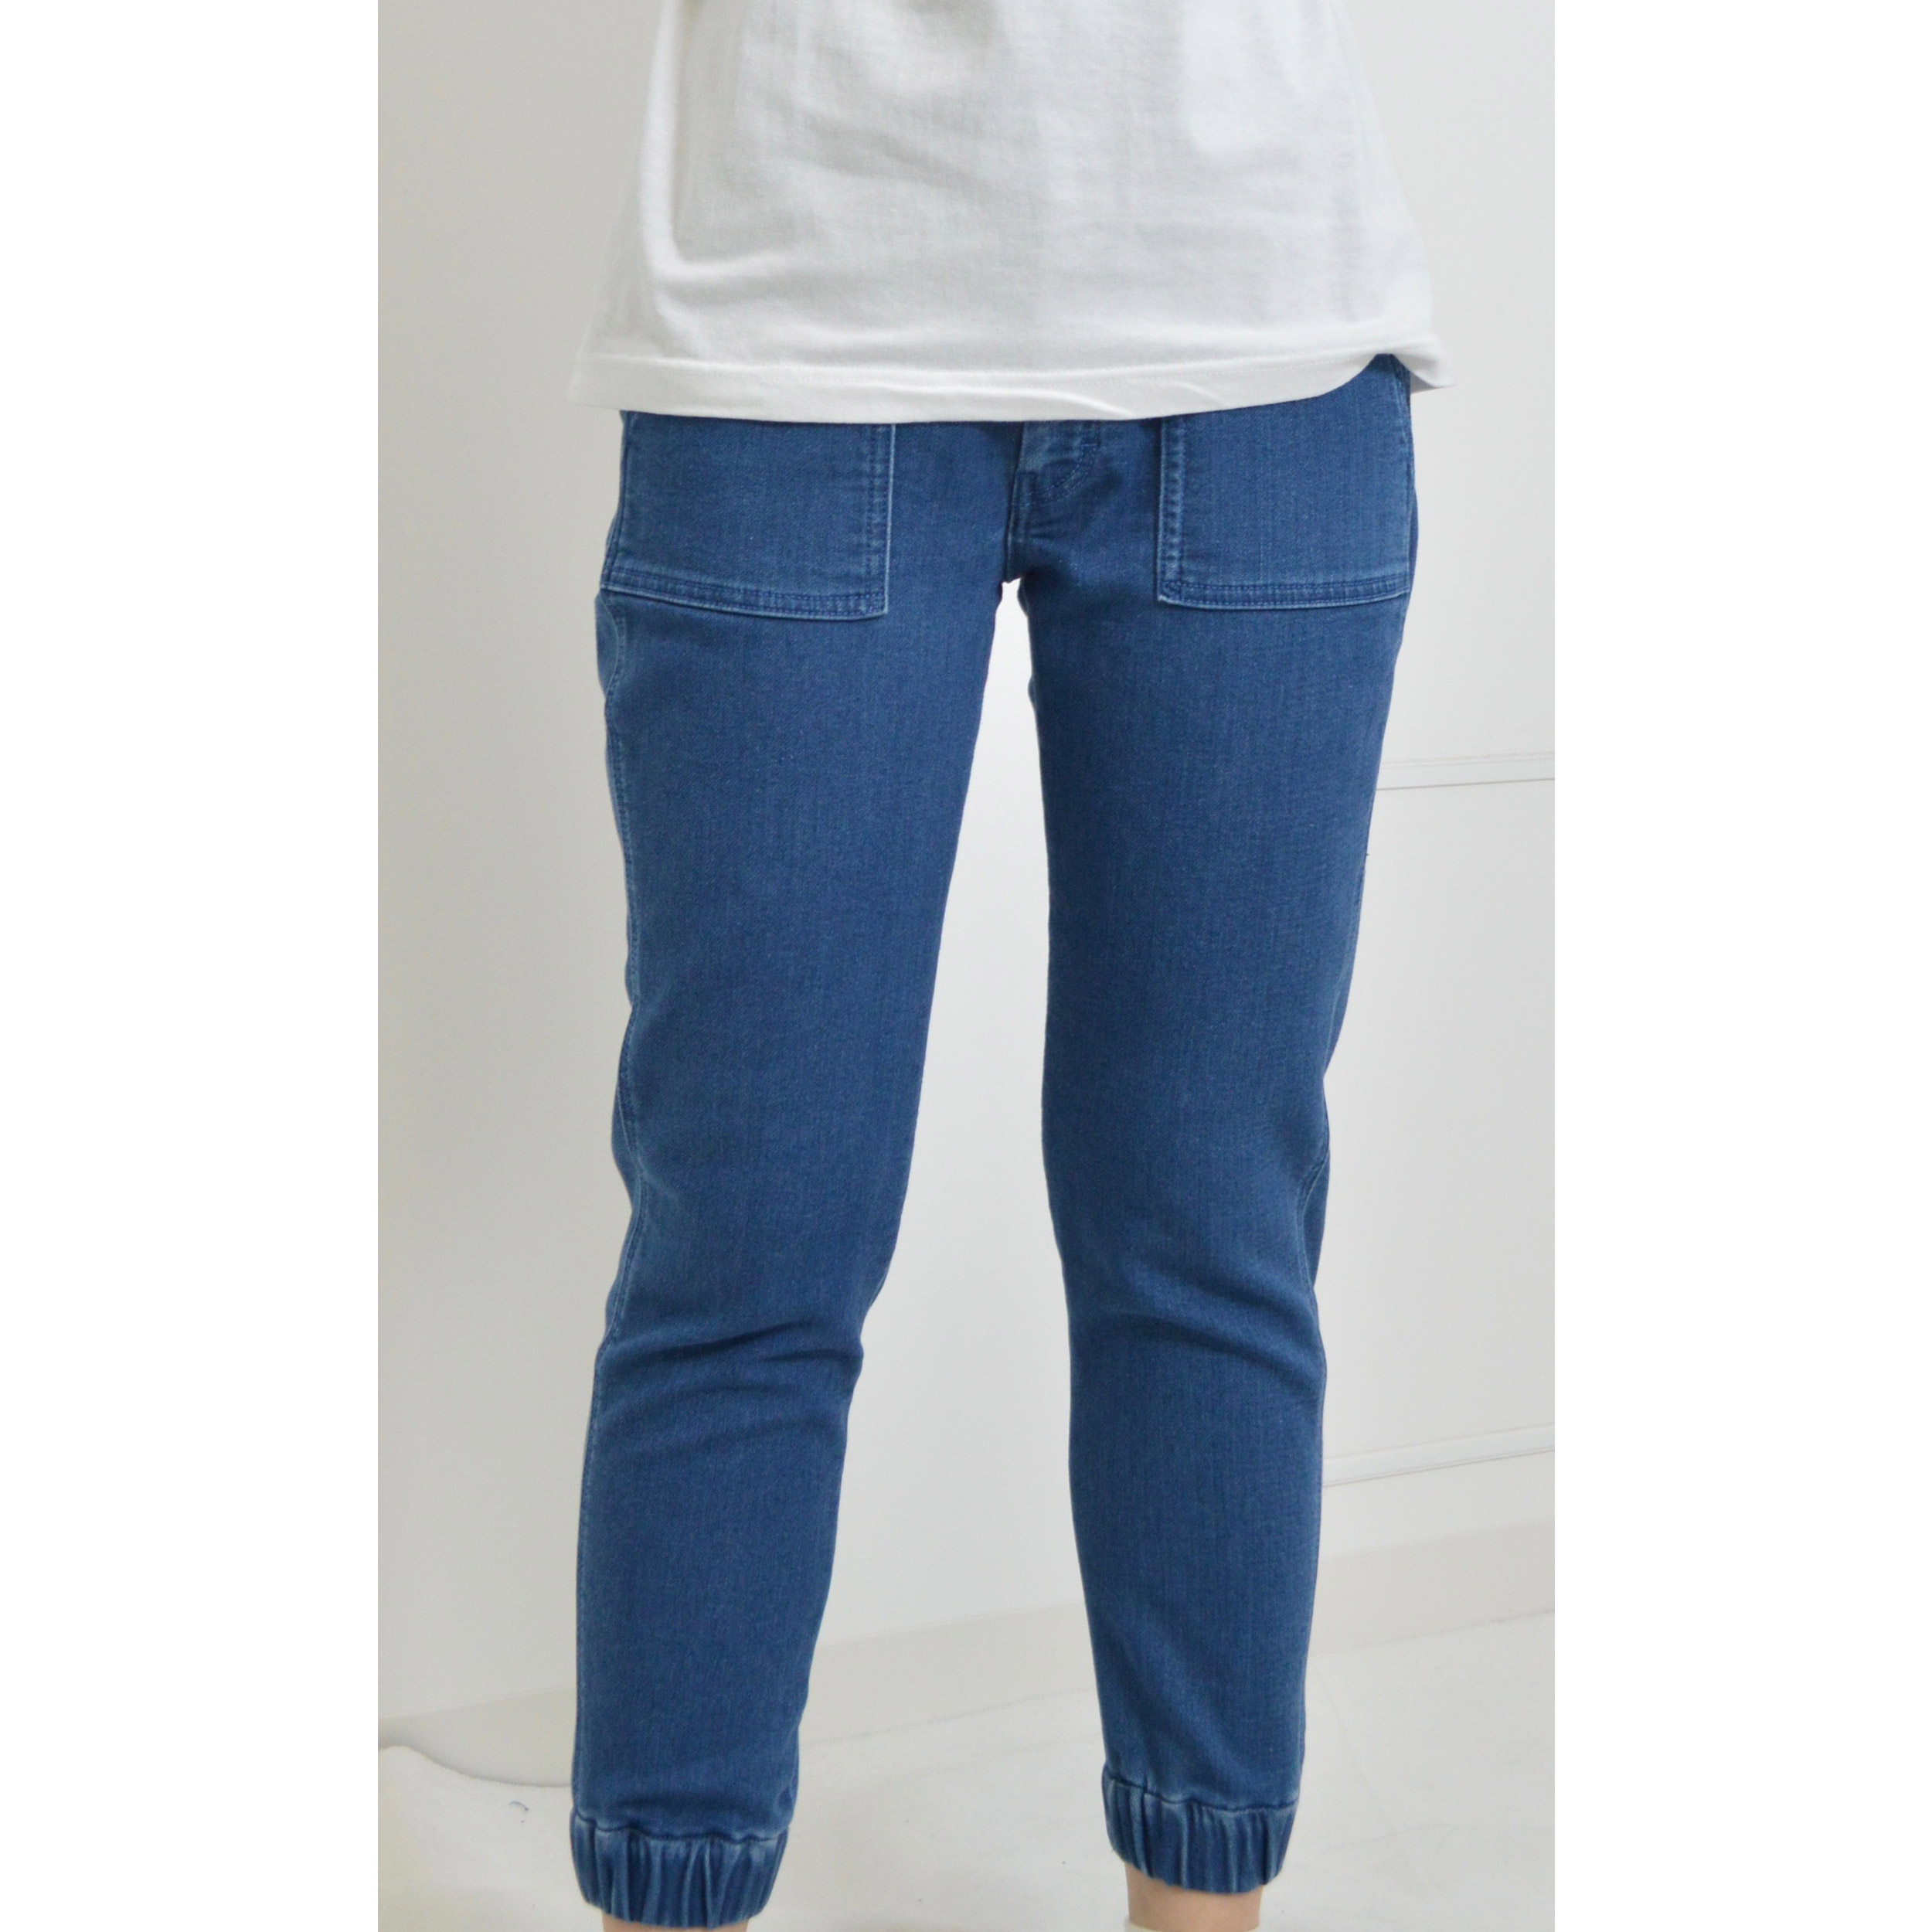 HINSON KNIT DENIM JOG HO (WOMAN)